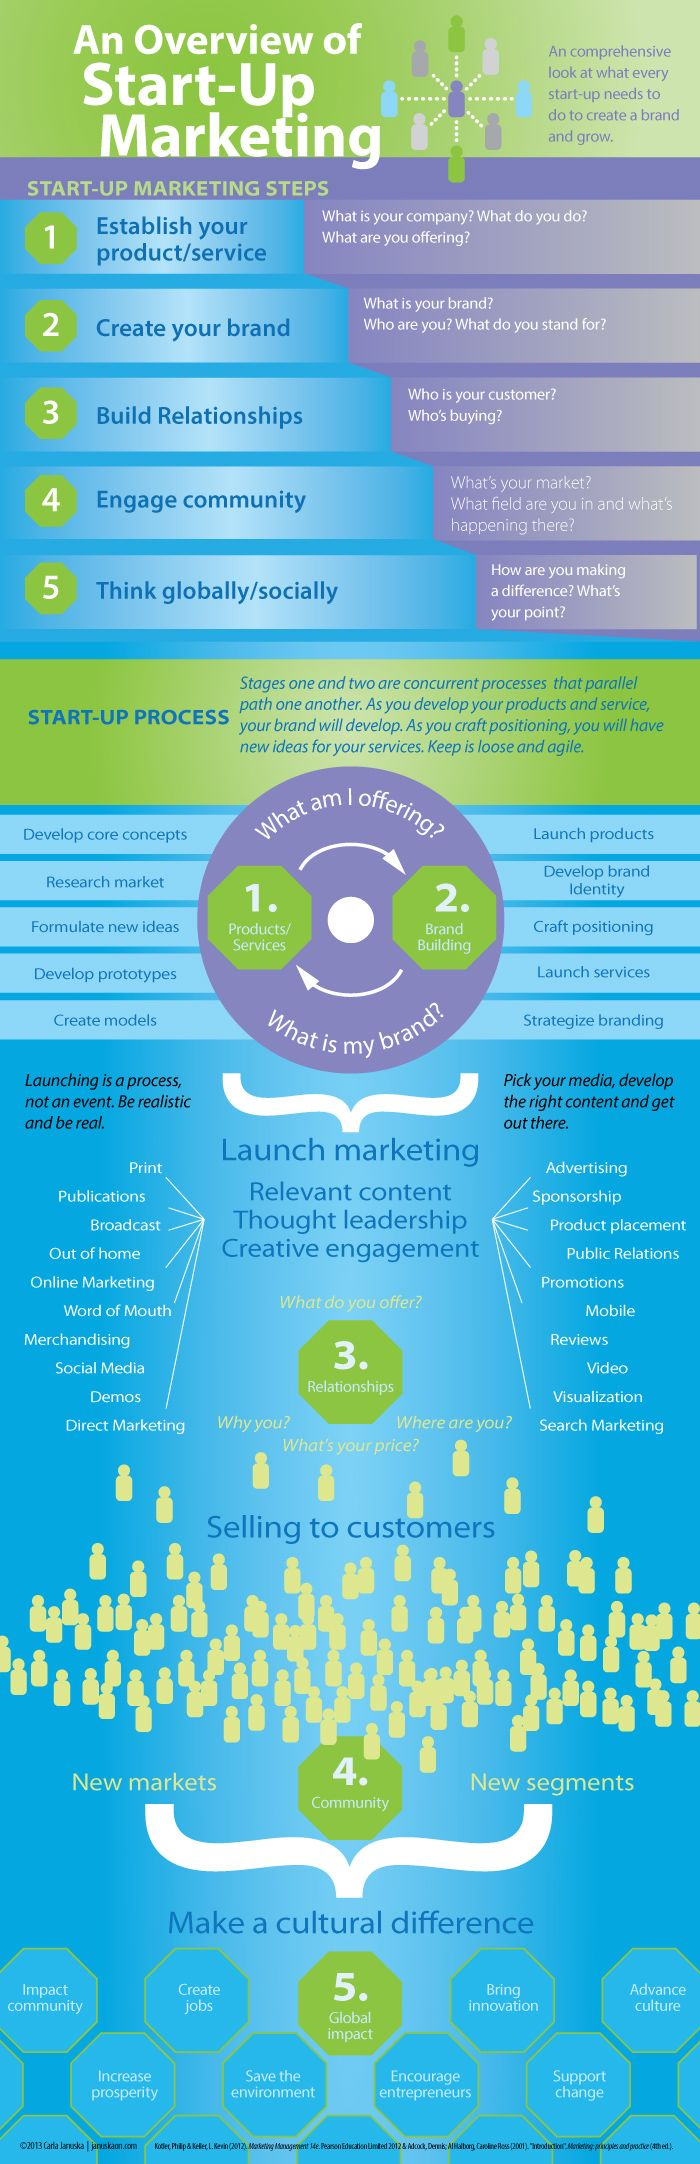 Start-up Marketing Infographic - Smart Hive [Love this!]